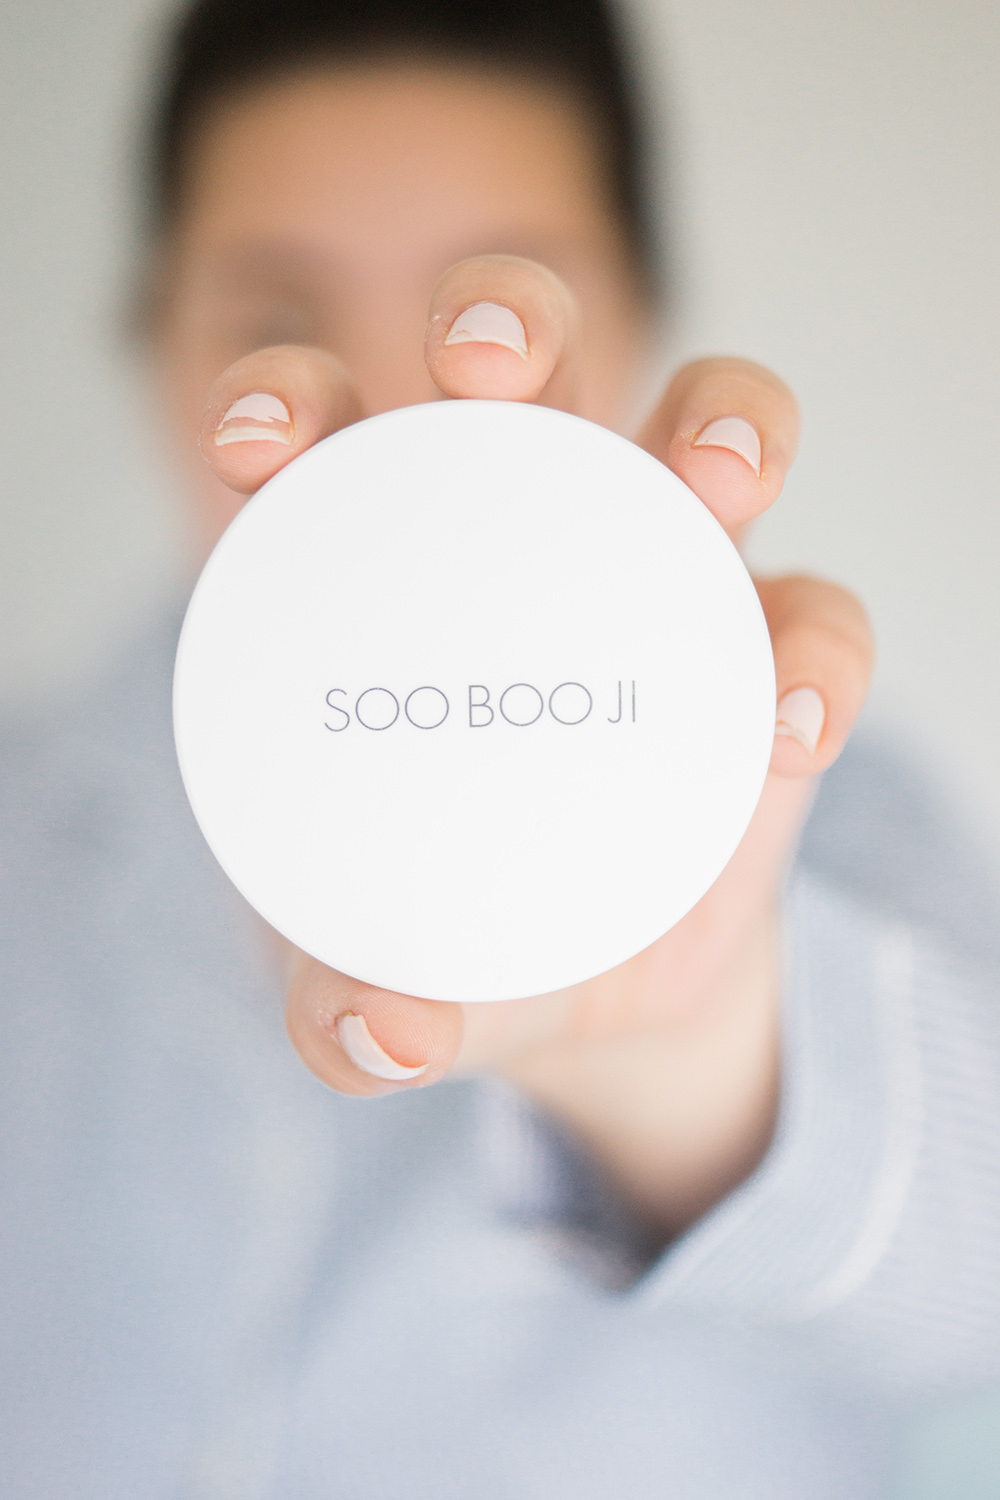 apieu-soo-boo-ji-sun-cotton-review-korean-skincare-beauty-photography